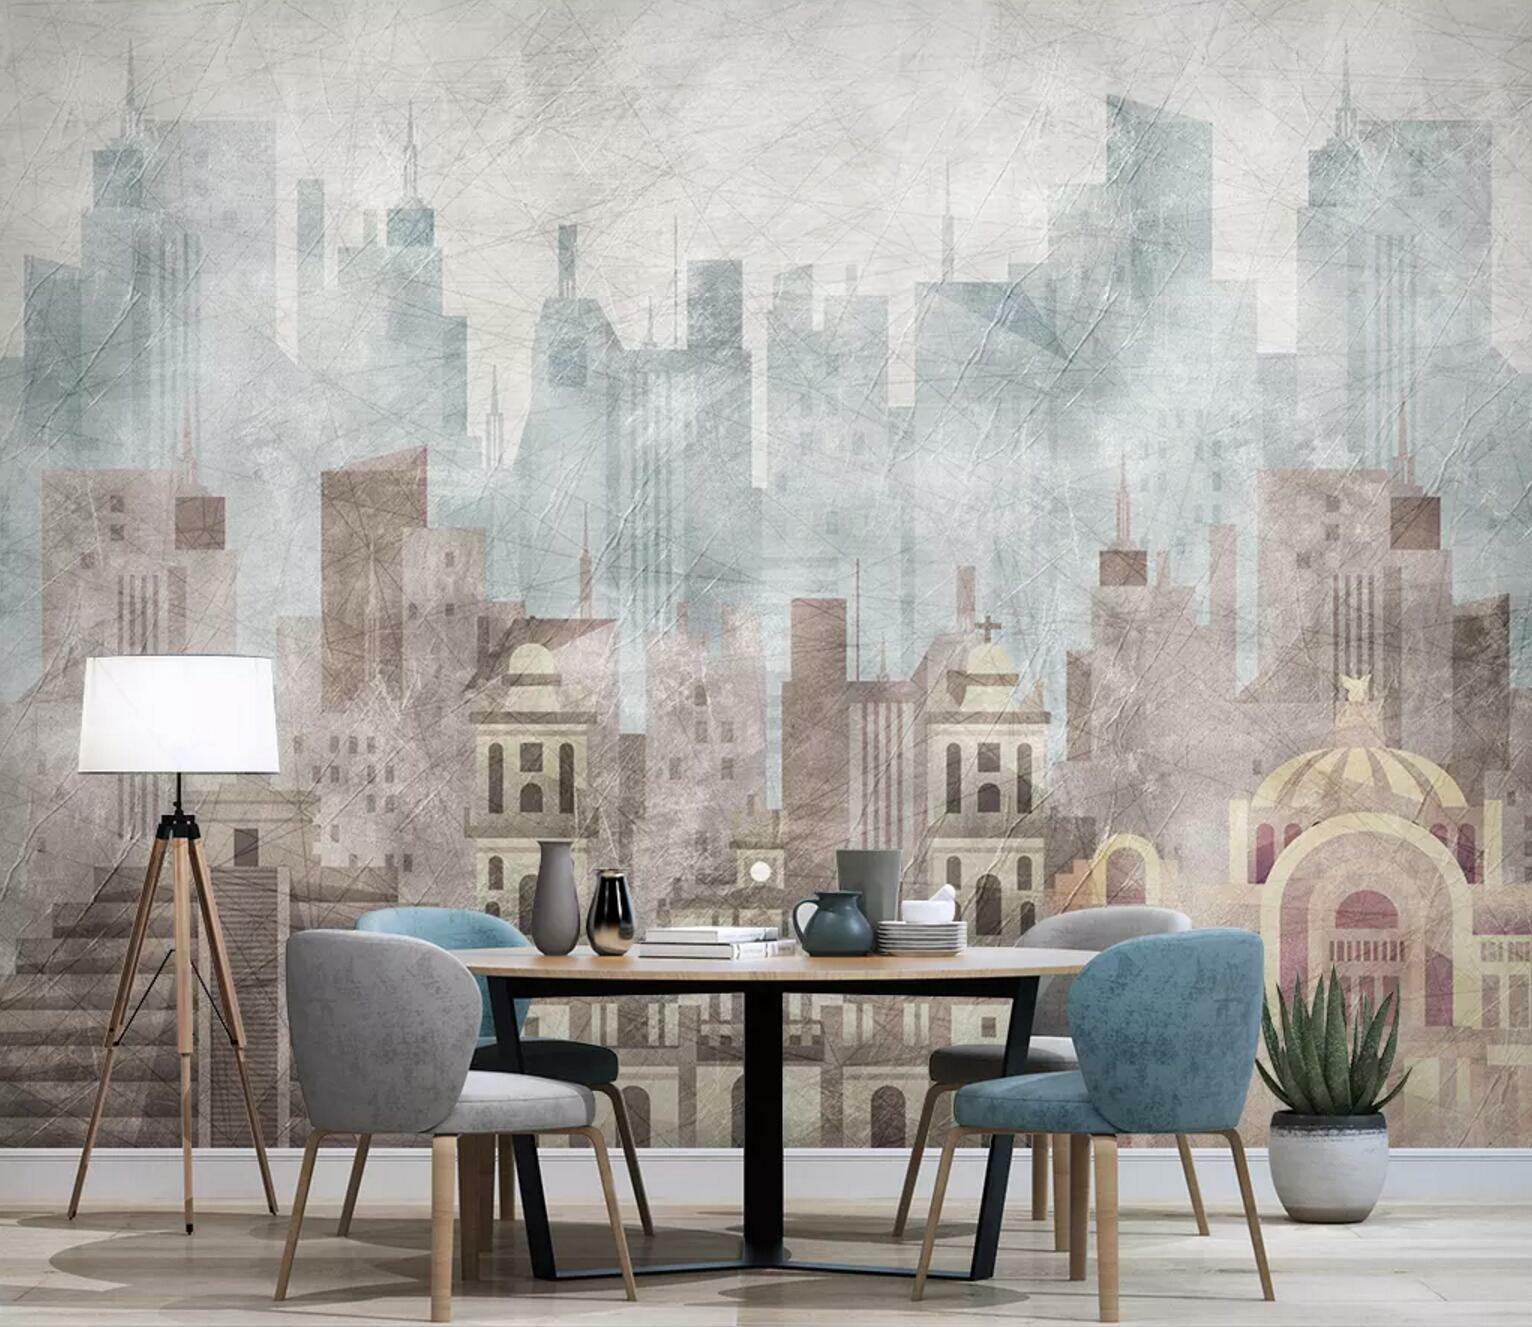 3D City Retro Style 55 Wall Paper Exclusive MXY Wallpaper Mural Decal Indoor AJ